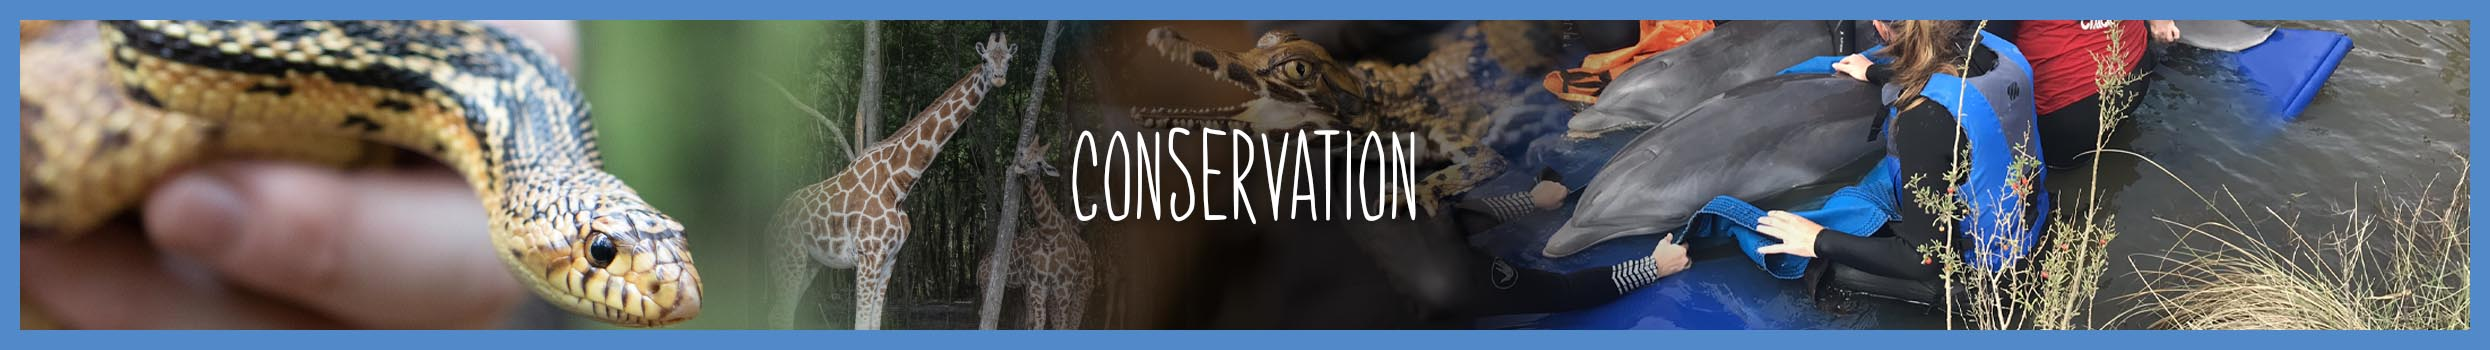 conservation-main-header-slider